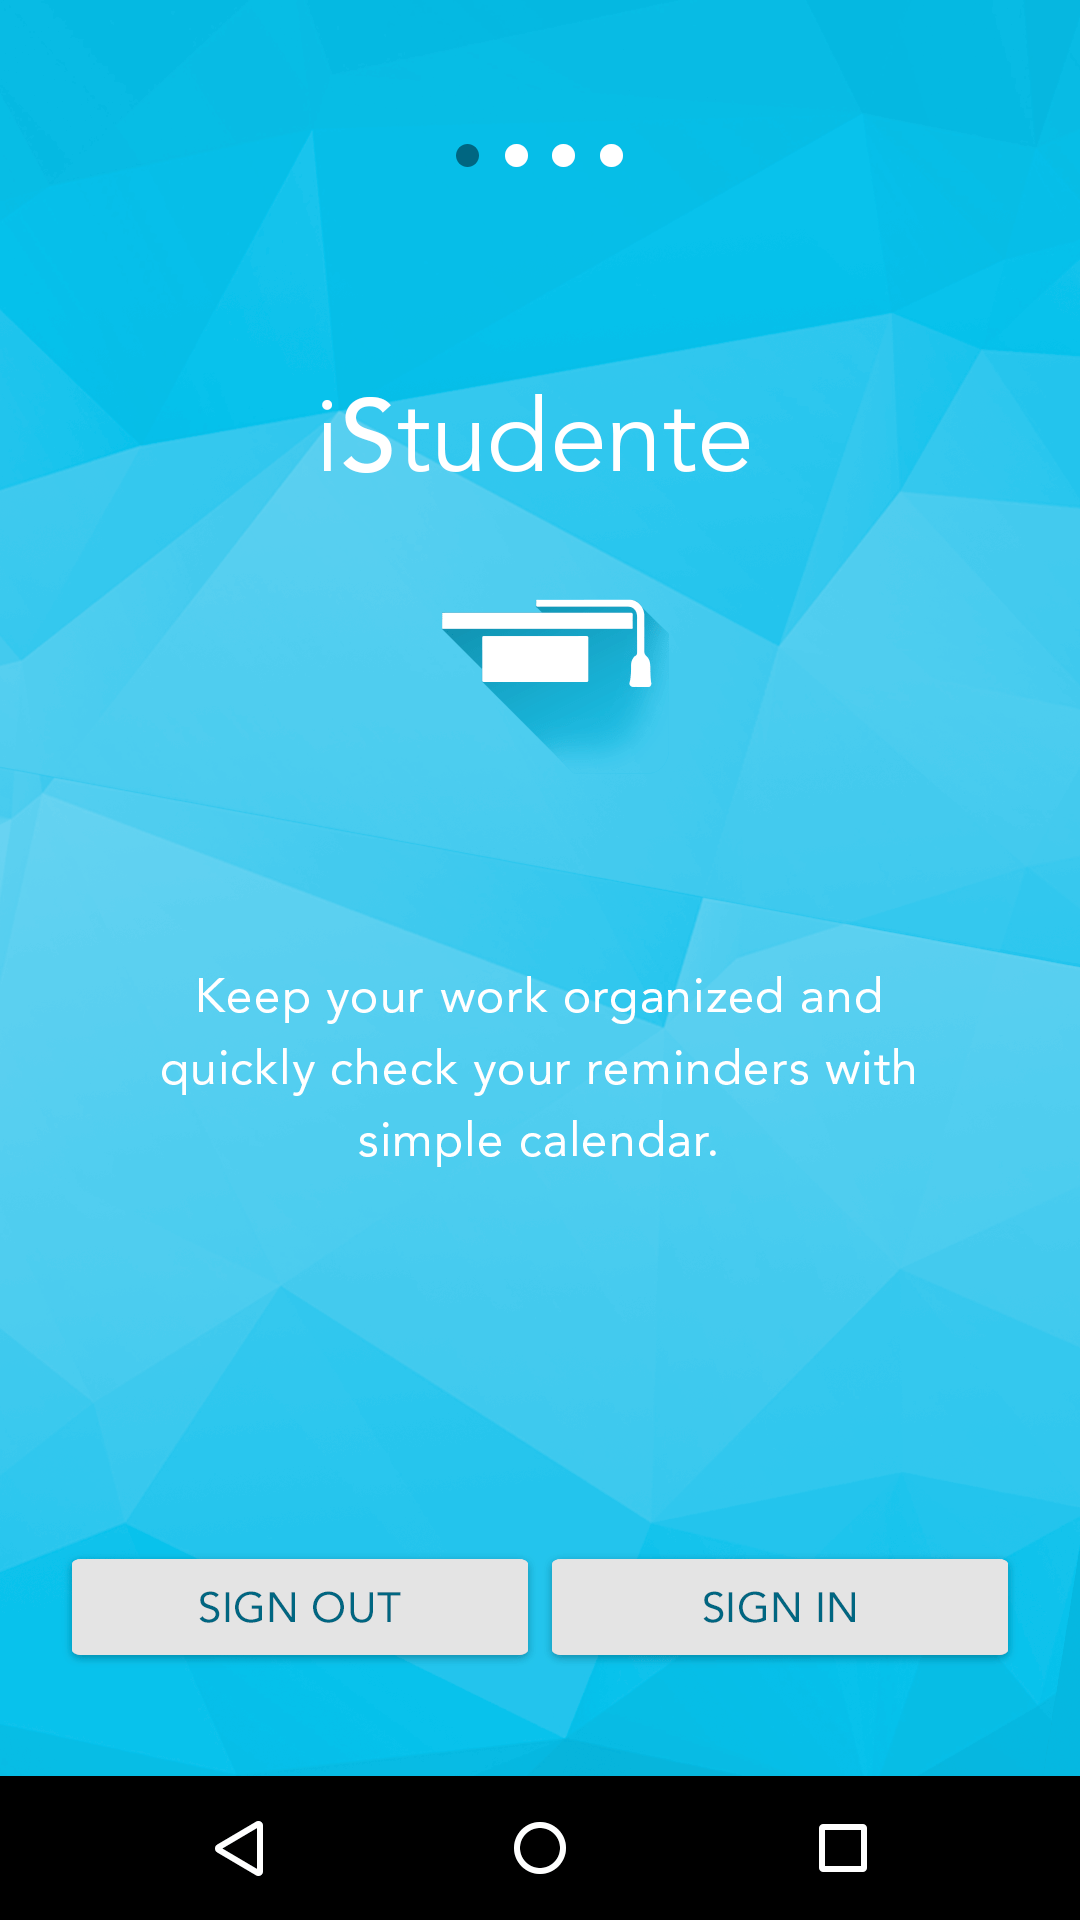 app-istudente-walkthroughs